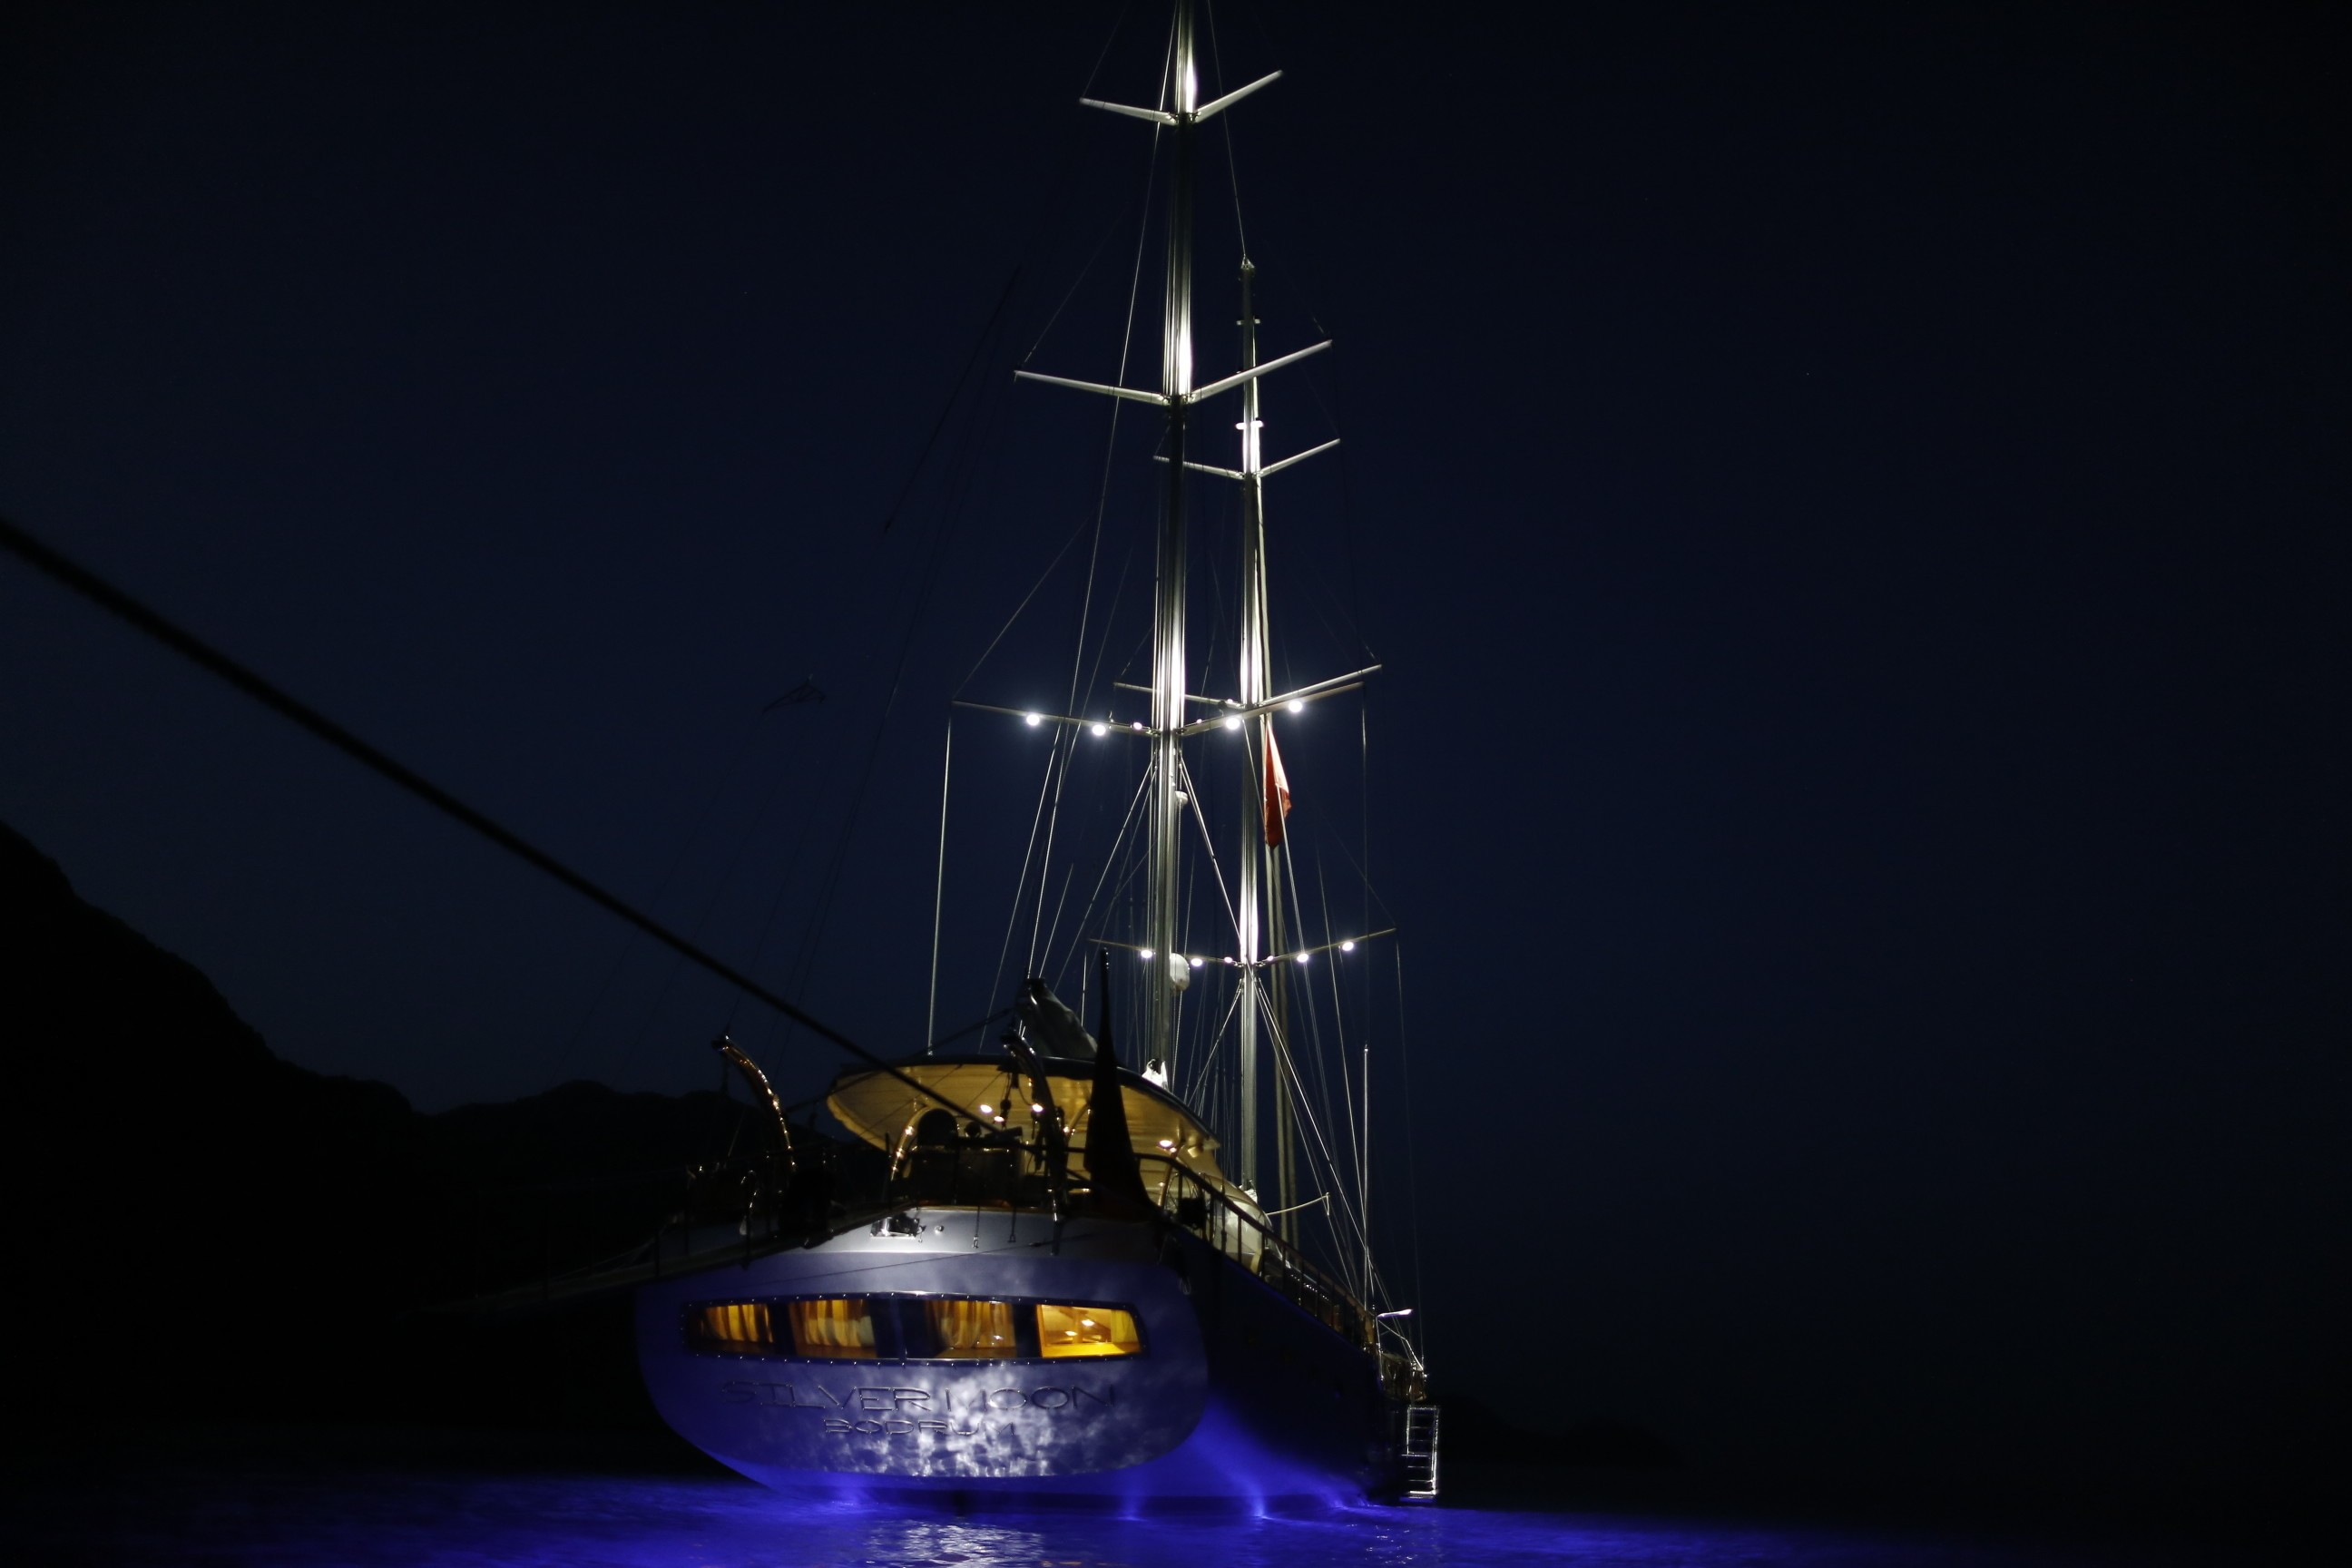 The 36m Yacht SILVER MOON